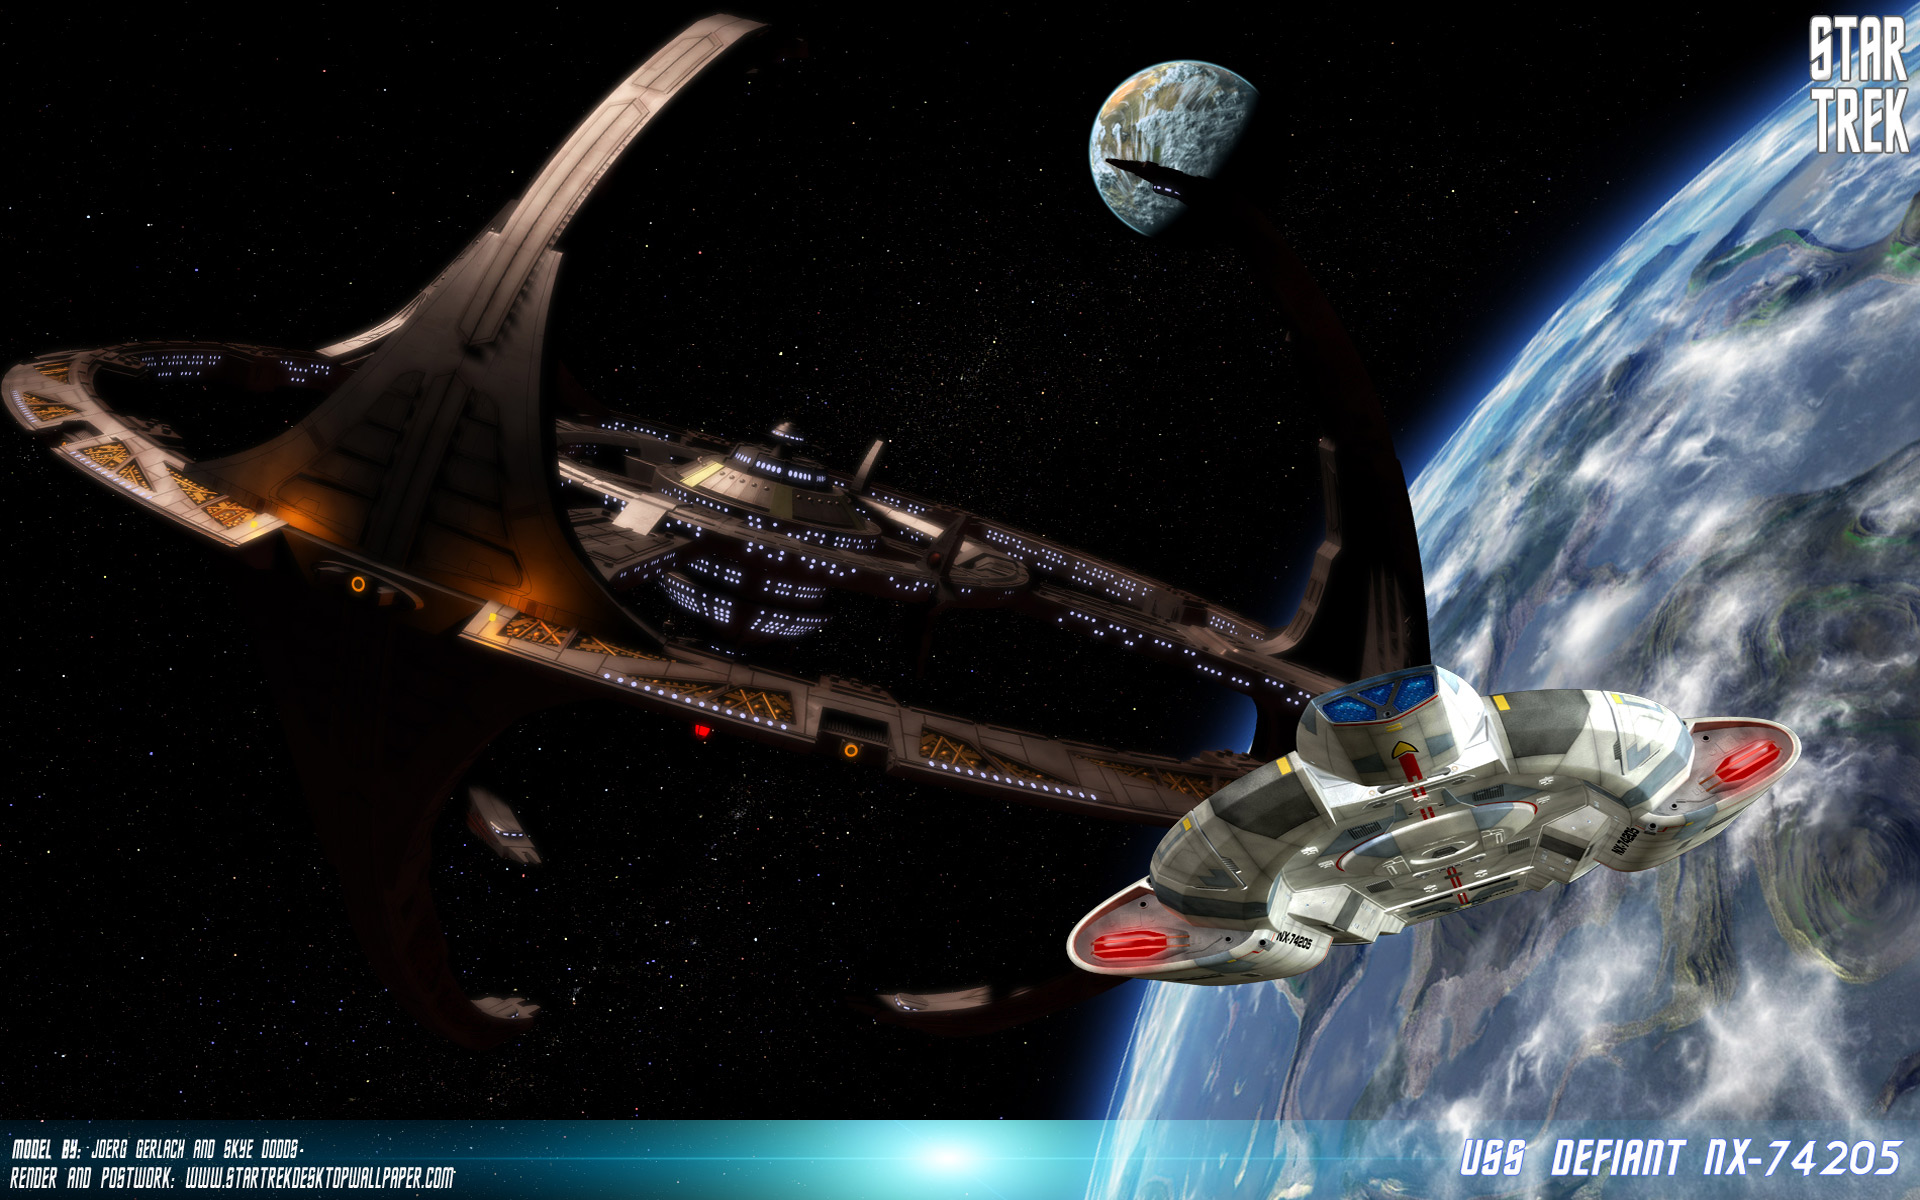 Star Trek Deep Space Nine USS Defiant Star Trek 1920x1200